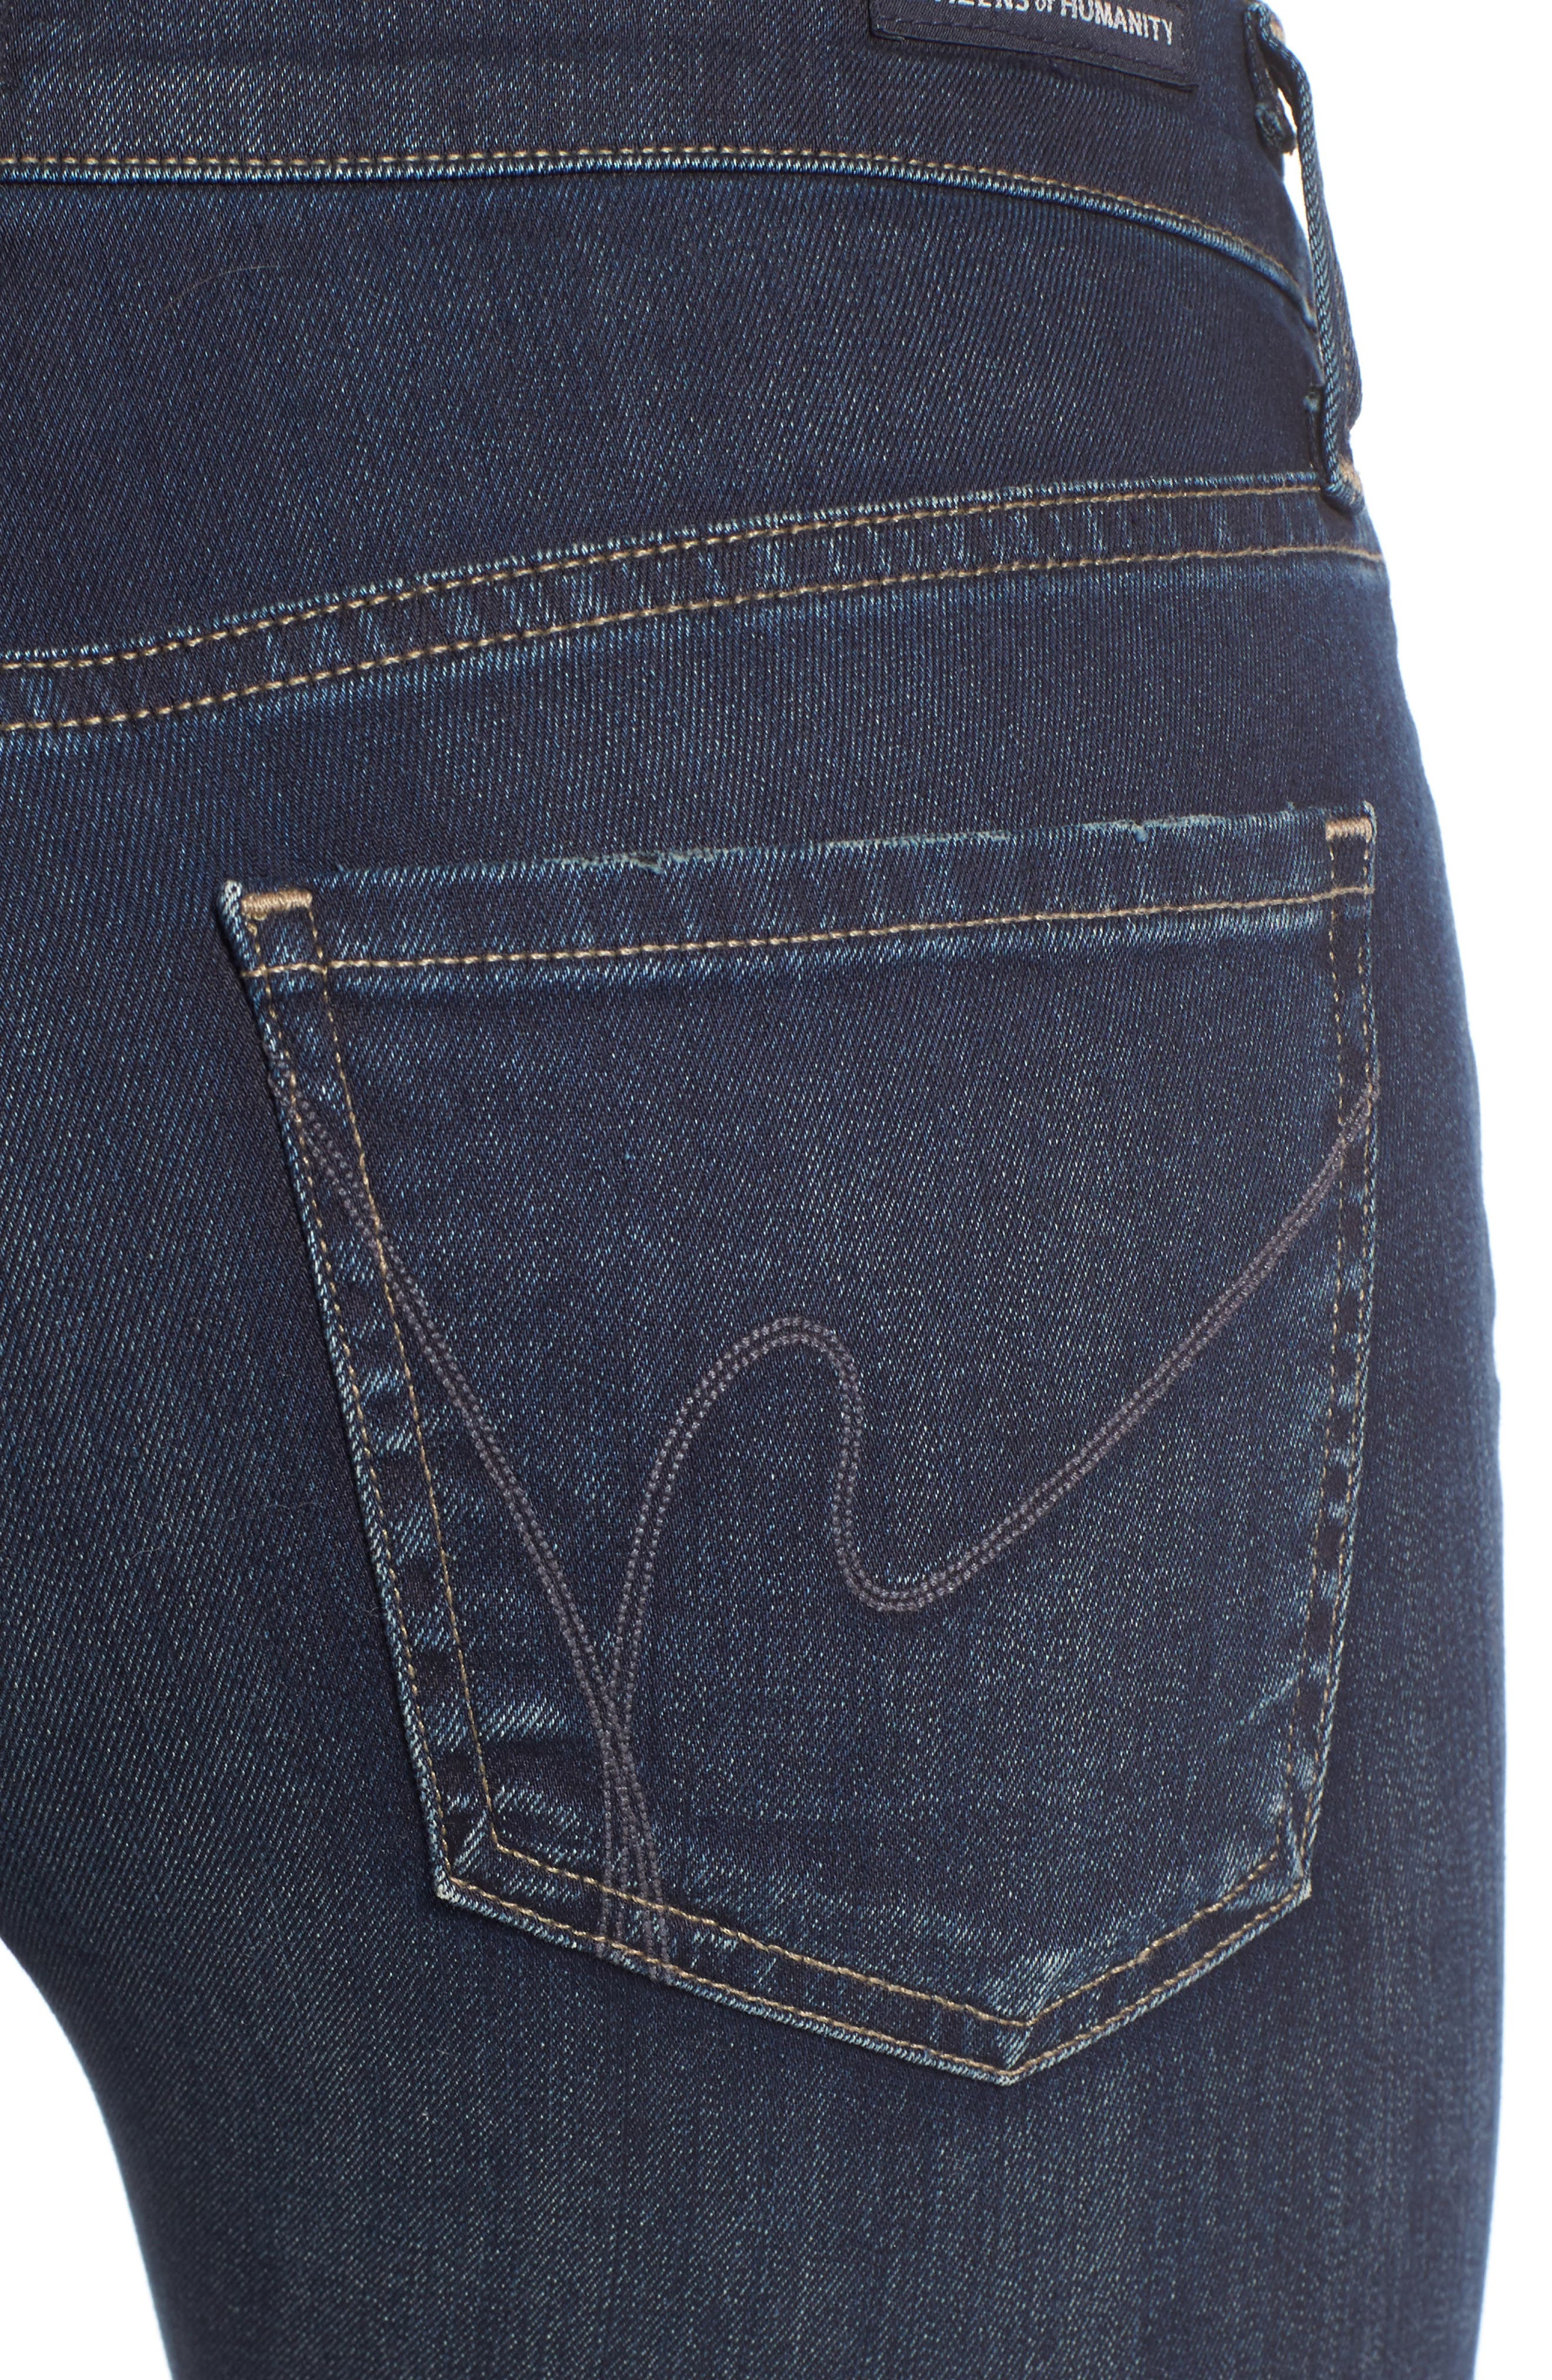 Alternate Image 4  - Citizens of Humanity Emmanuelle Slim Bootcut Jeans (Ellis)